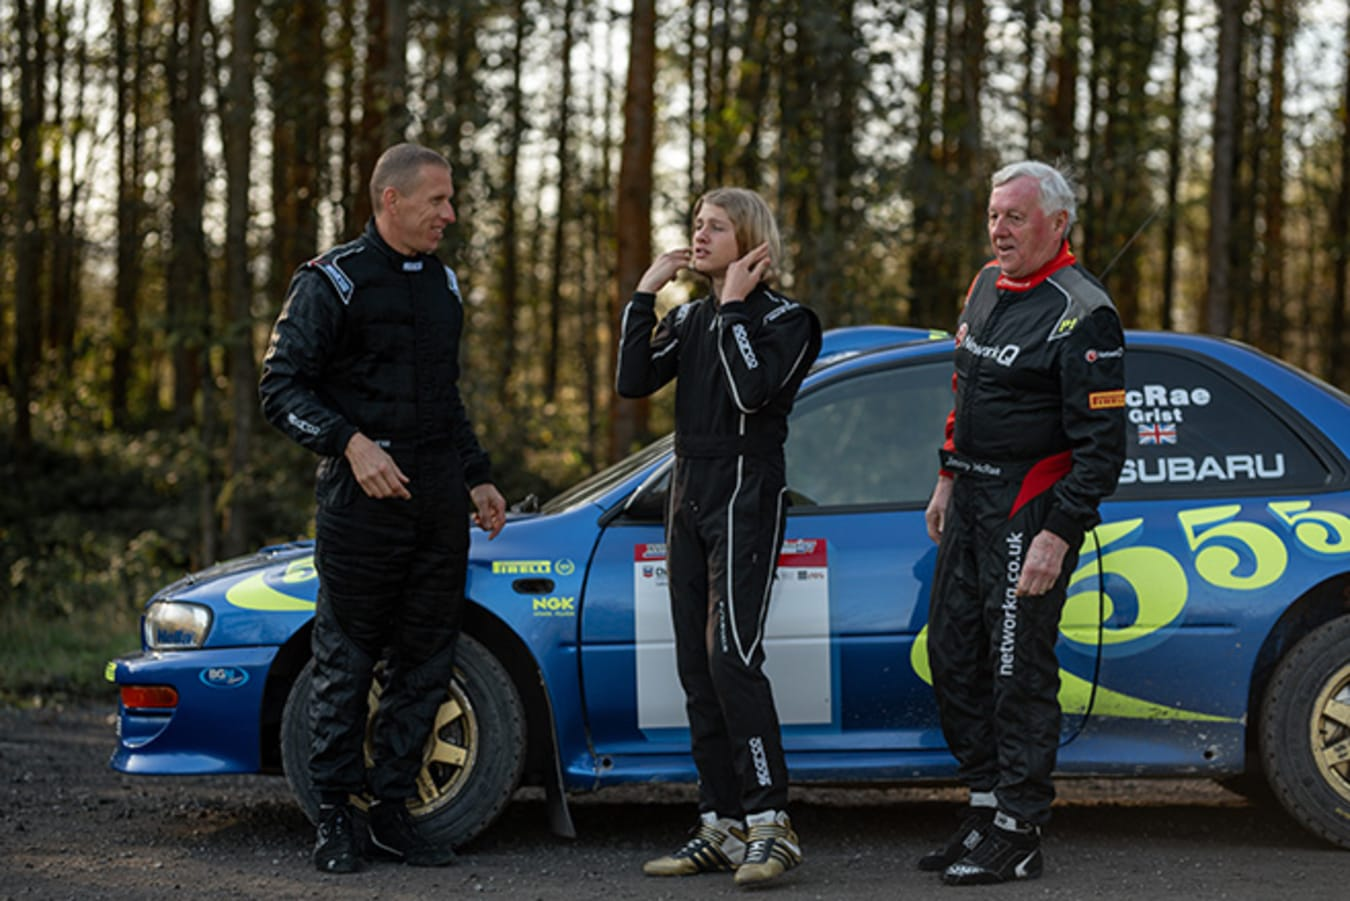 McRae family rally drivers